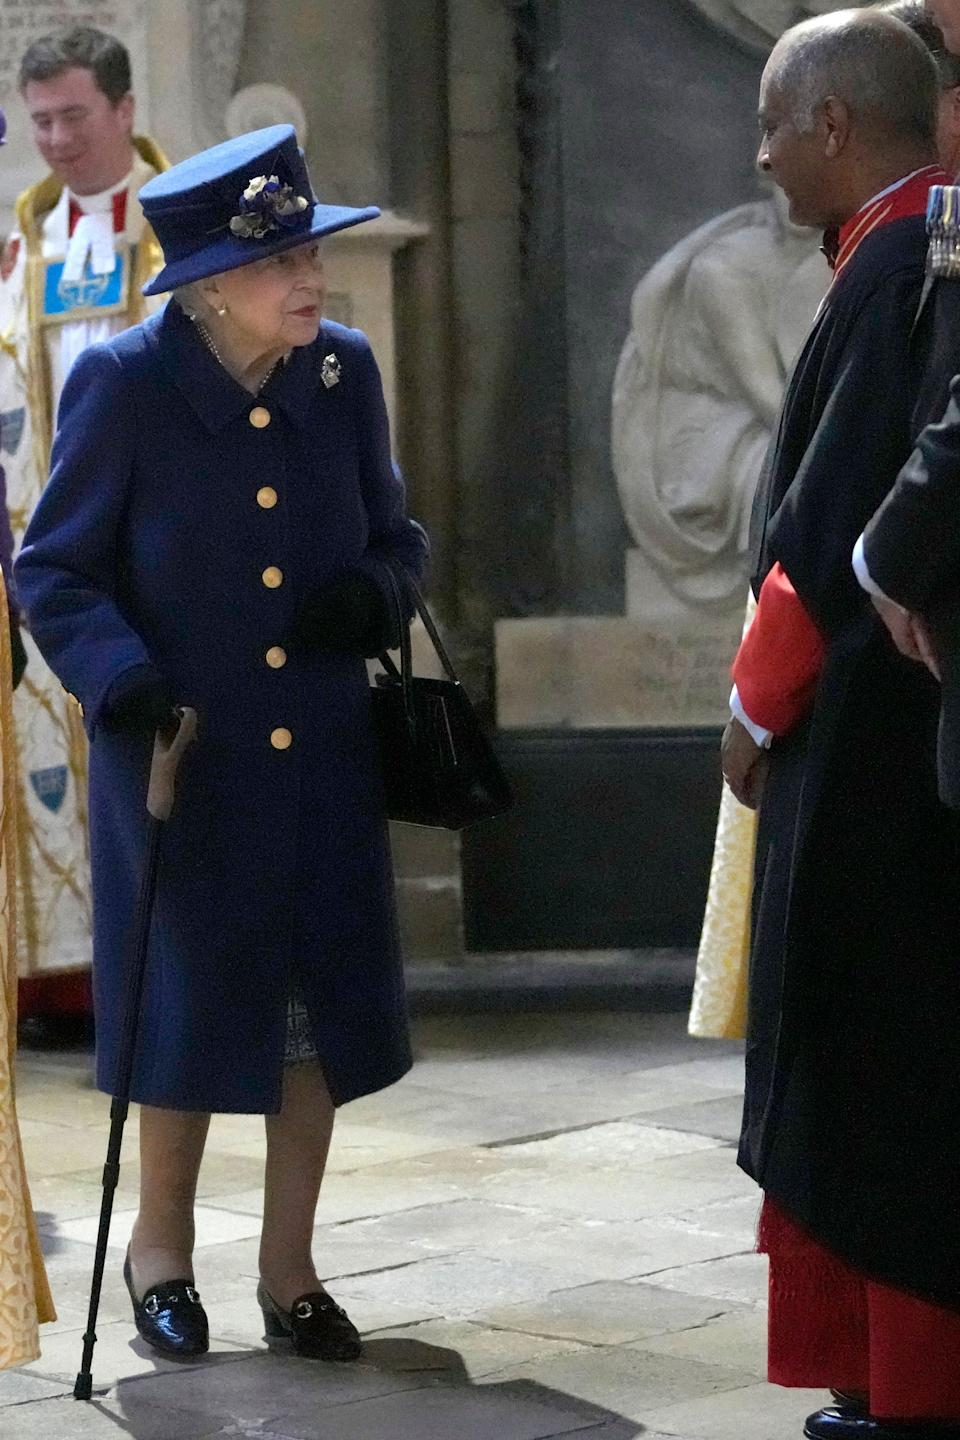 Britain's Queen Elizabeth II arrives to attend a Service of Thanksgiving to mark the Centenary of the Royal British Legion at Westminster Abbey in London on October 12, 2021. - The Royal British Legion has been celebrating its 100th Anniversary throughout 2021 with a special programme of activity, paying tribute to those who have contributed to its proud history and celebrating with the communities across the UK and around the world who are at its heart. (Photo by Frank Augstein / POOL / AFP) (Photo by FRANK AUGSTEIN/POOL/AFP via Getty Images)